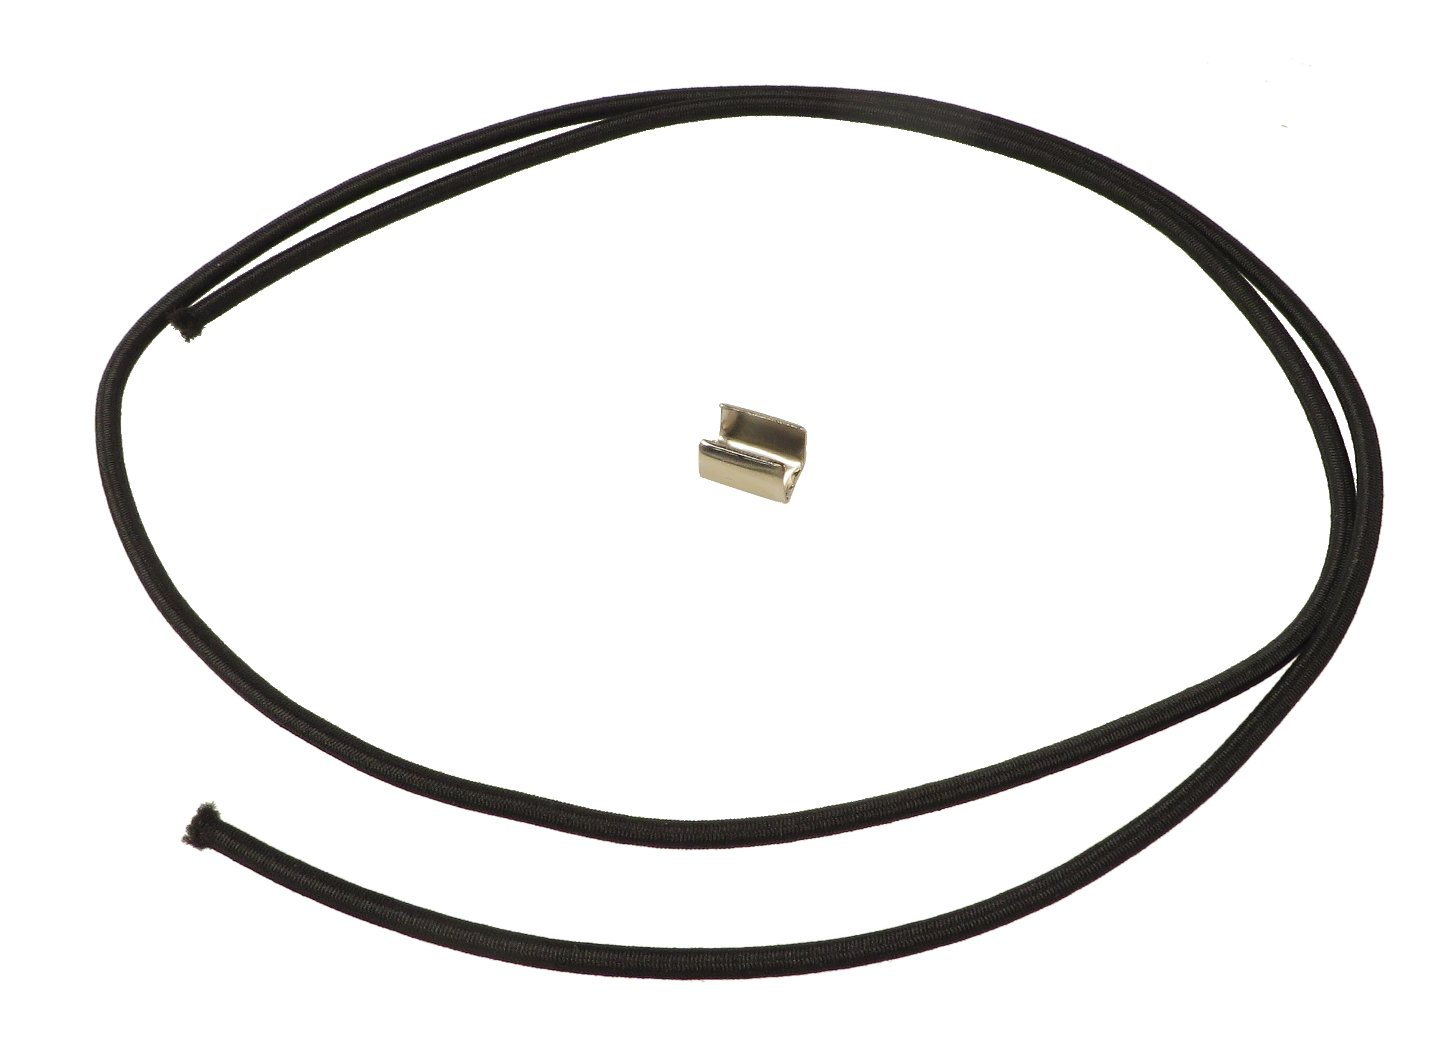 Audio-Technica P11668  Restring Kit for AT8410A P11668